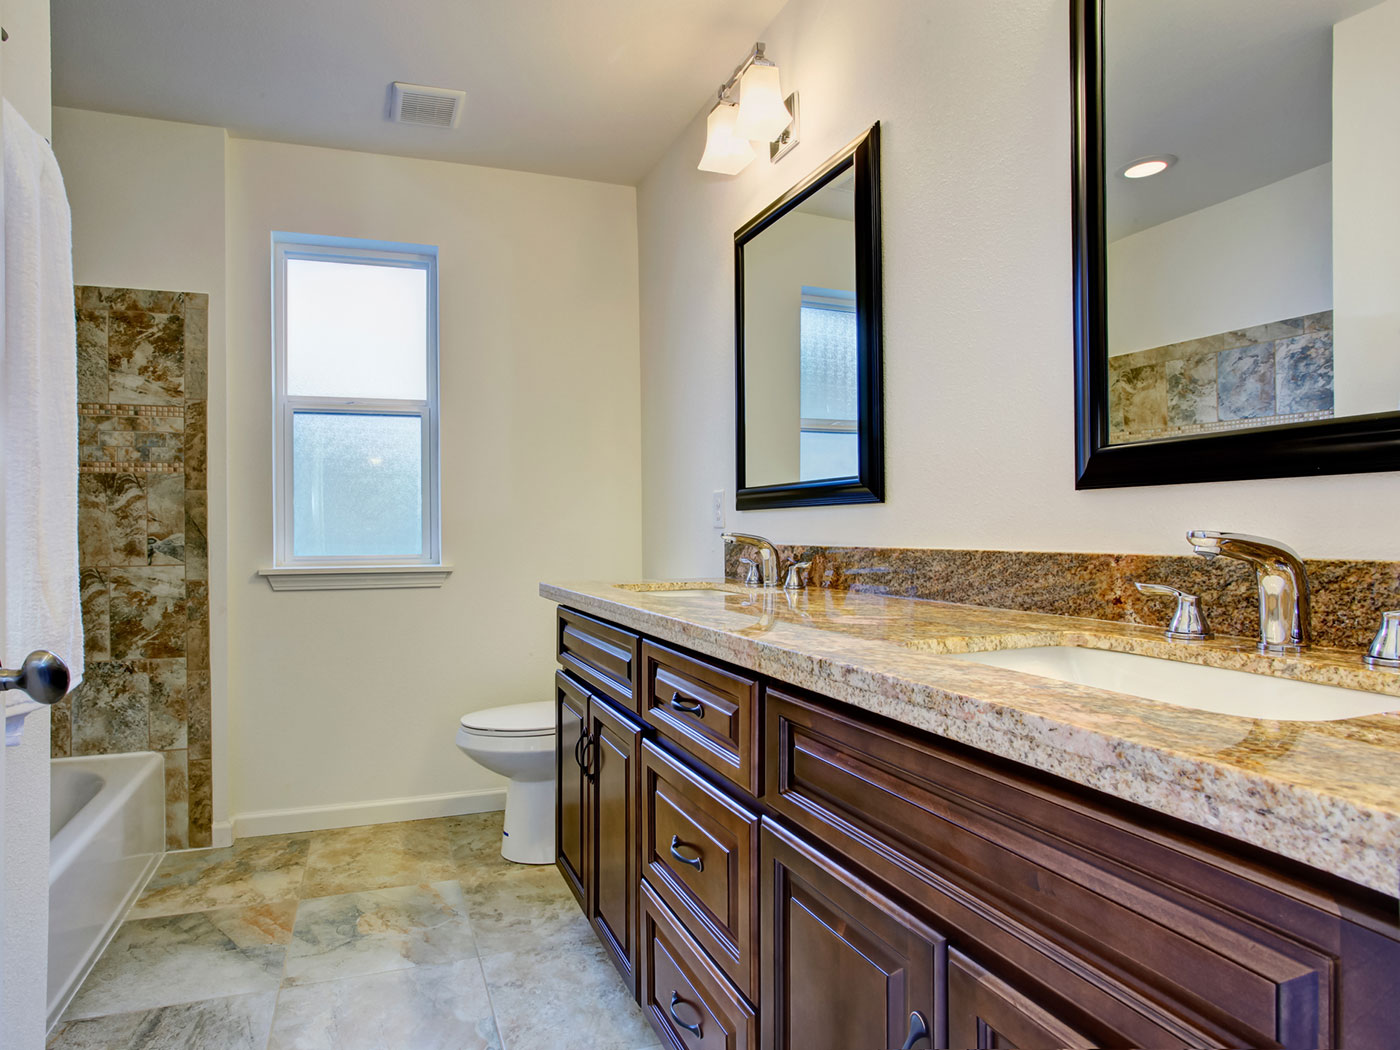 Custom Bathroom Remodel with Tile Flooring - Craftworks Custom Cabinetry - Rochester, NY